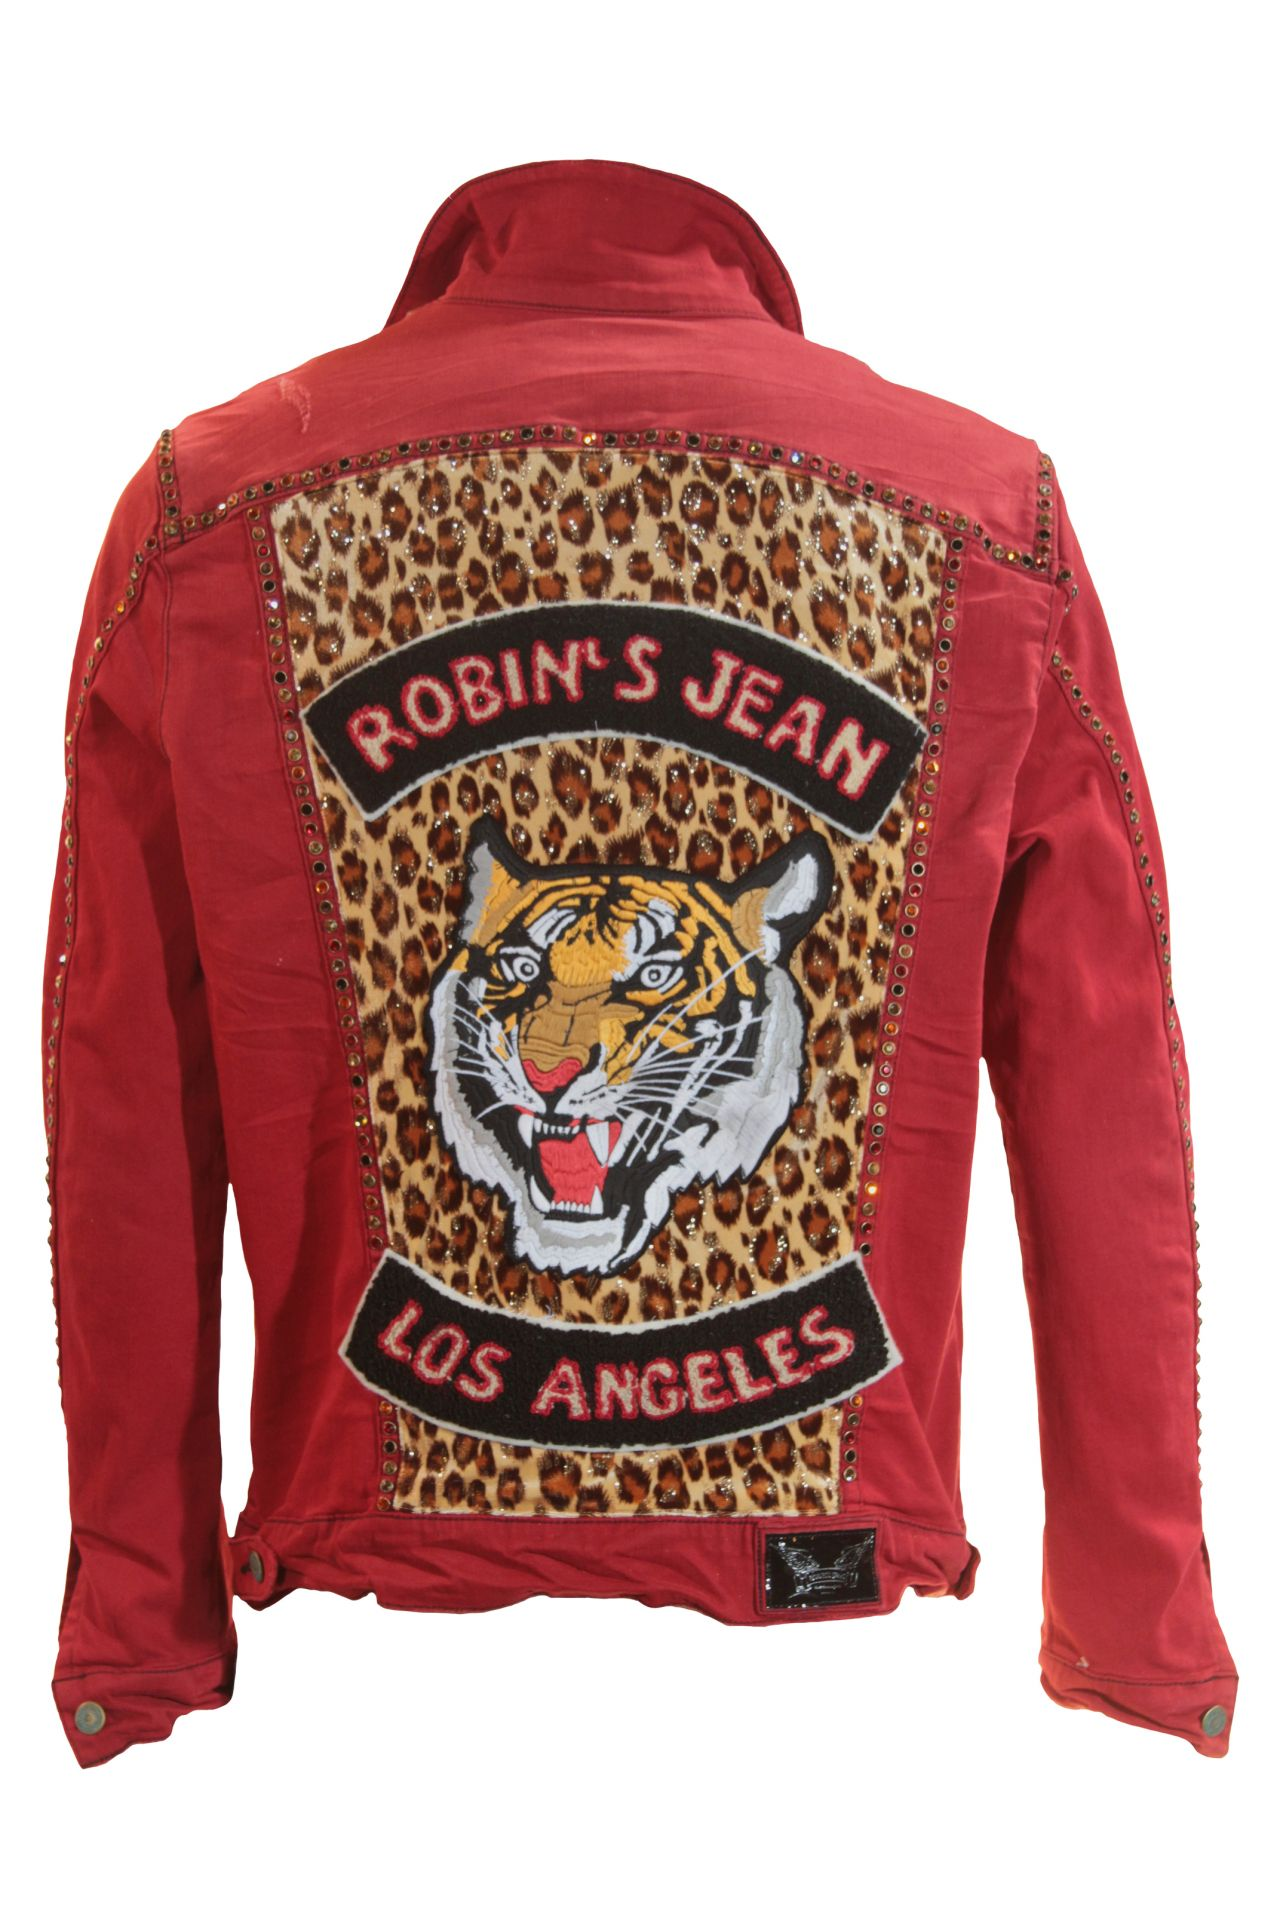 LIMITED DENIM JACKET IN F_UP RED WITH TIGER PATCH & STUDS